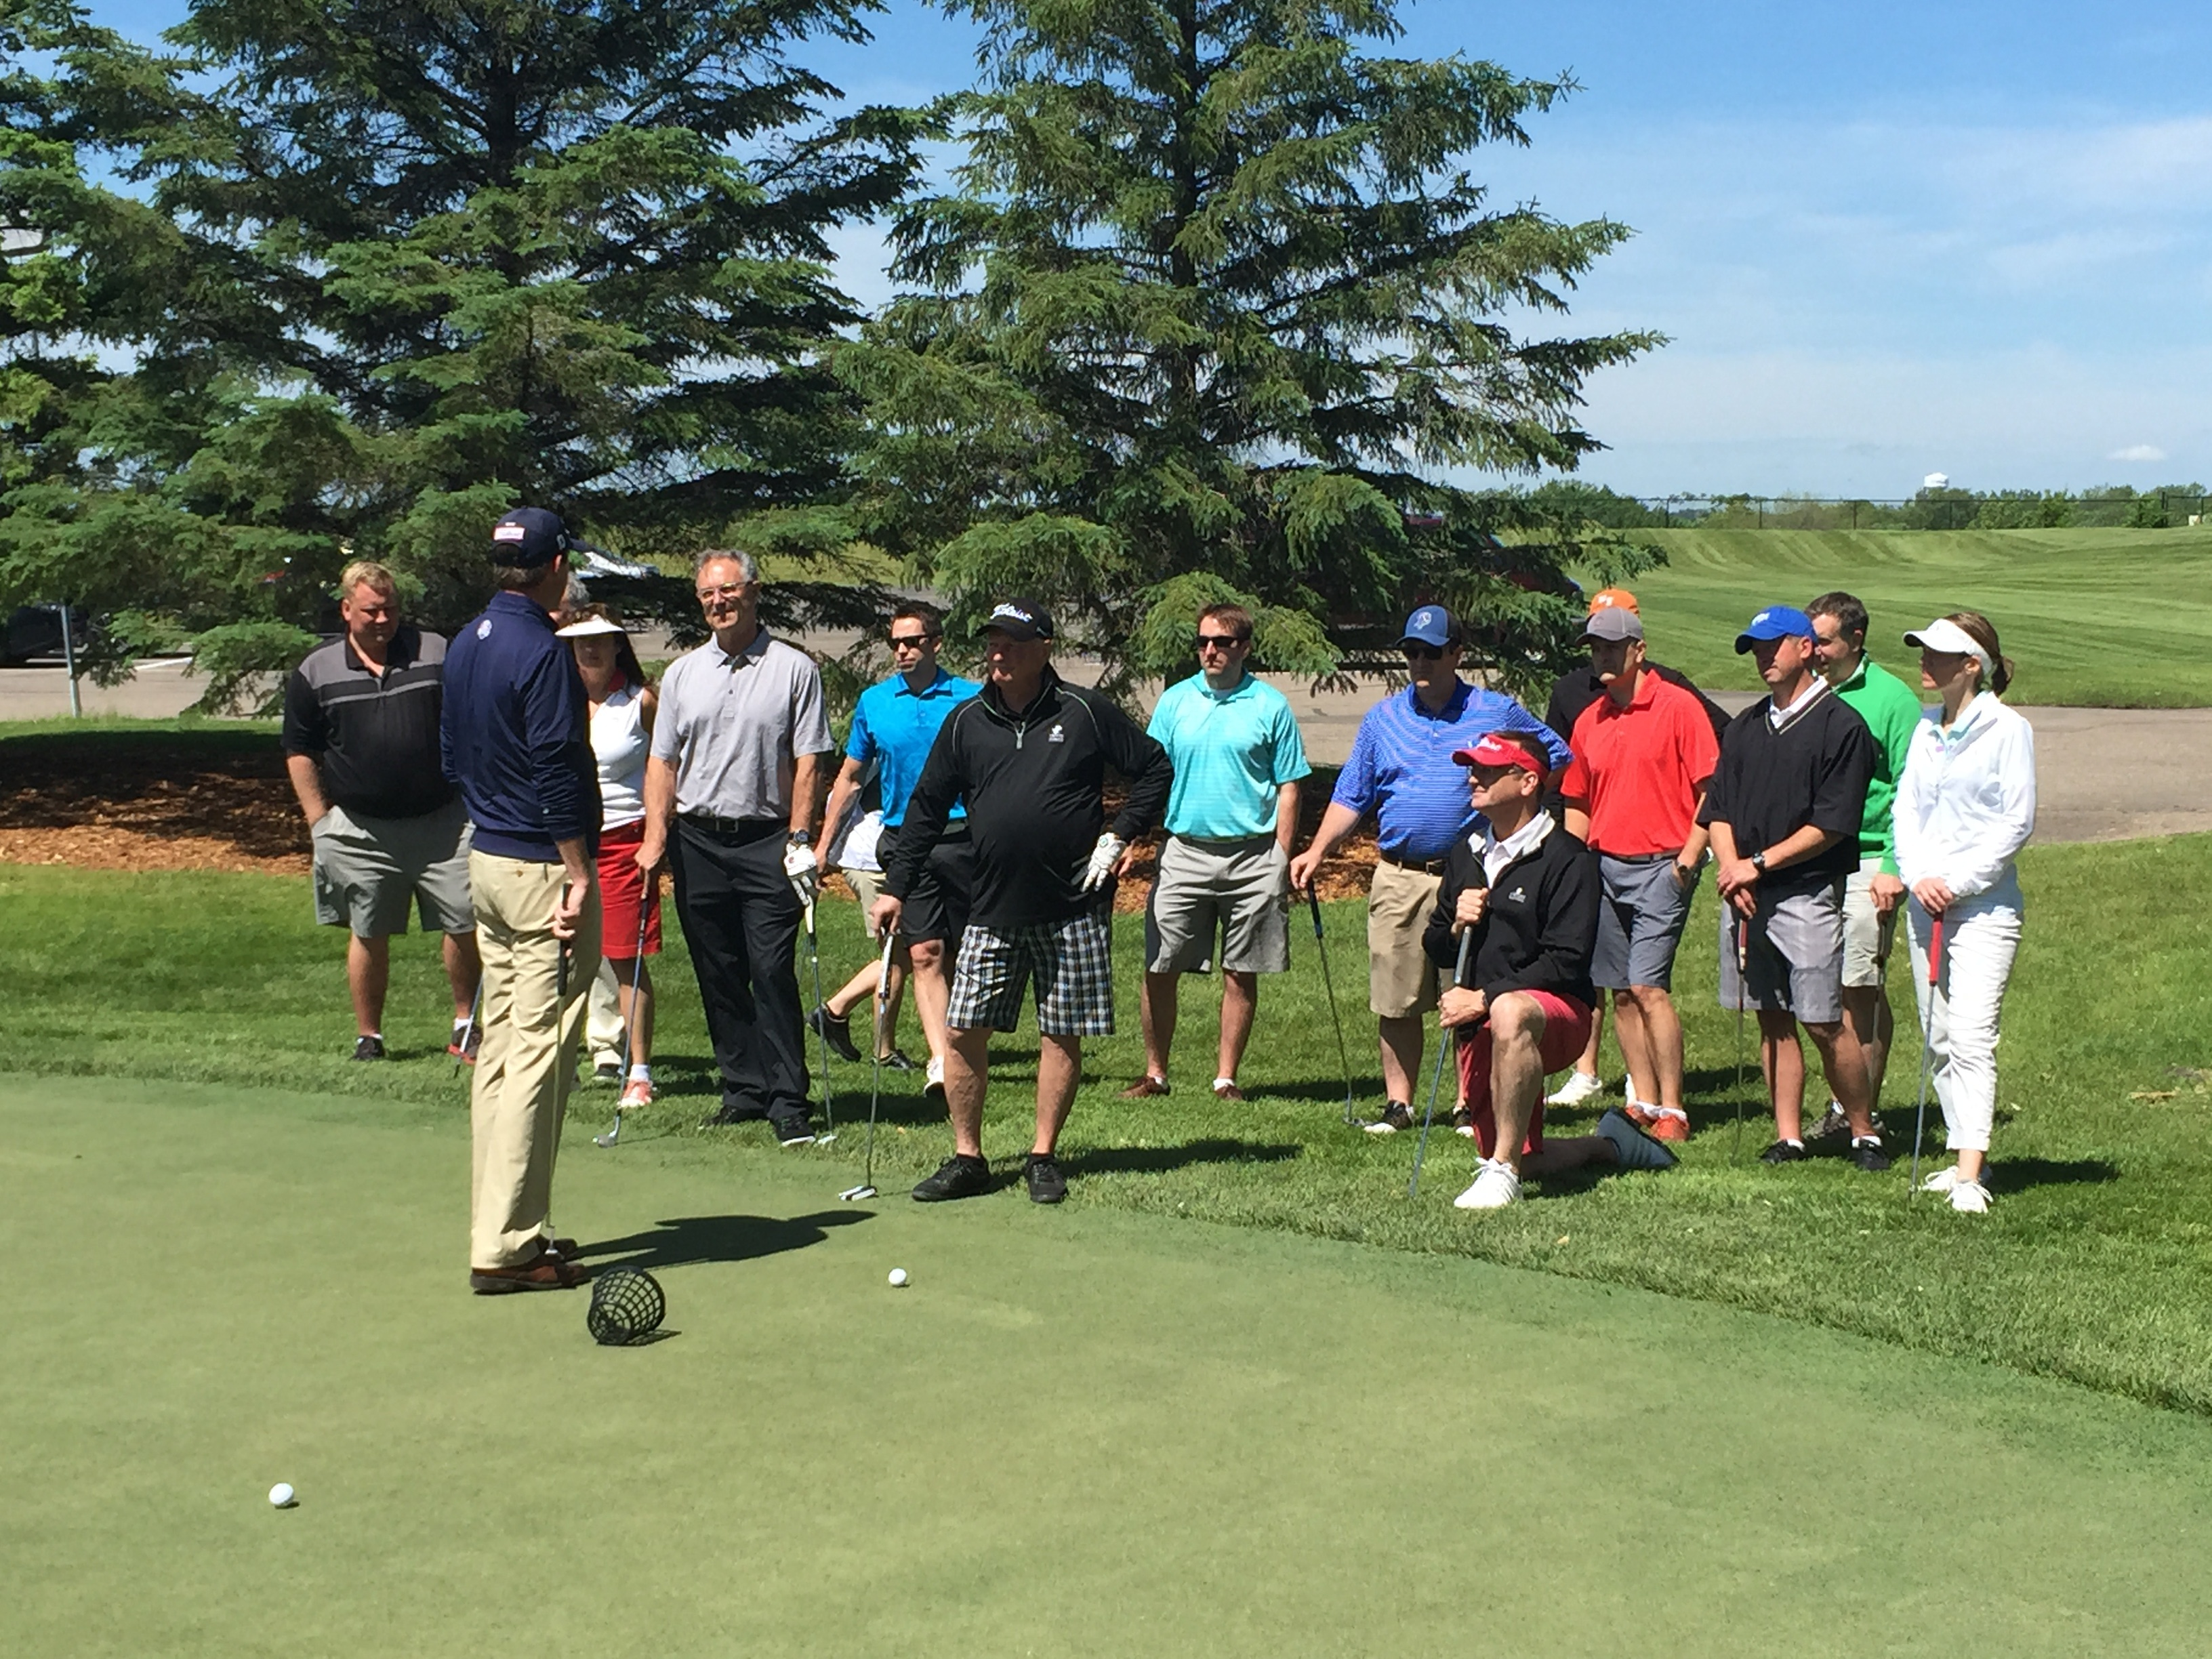 Golfers at a golf clinic at Hazeltine National Golf Club